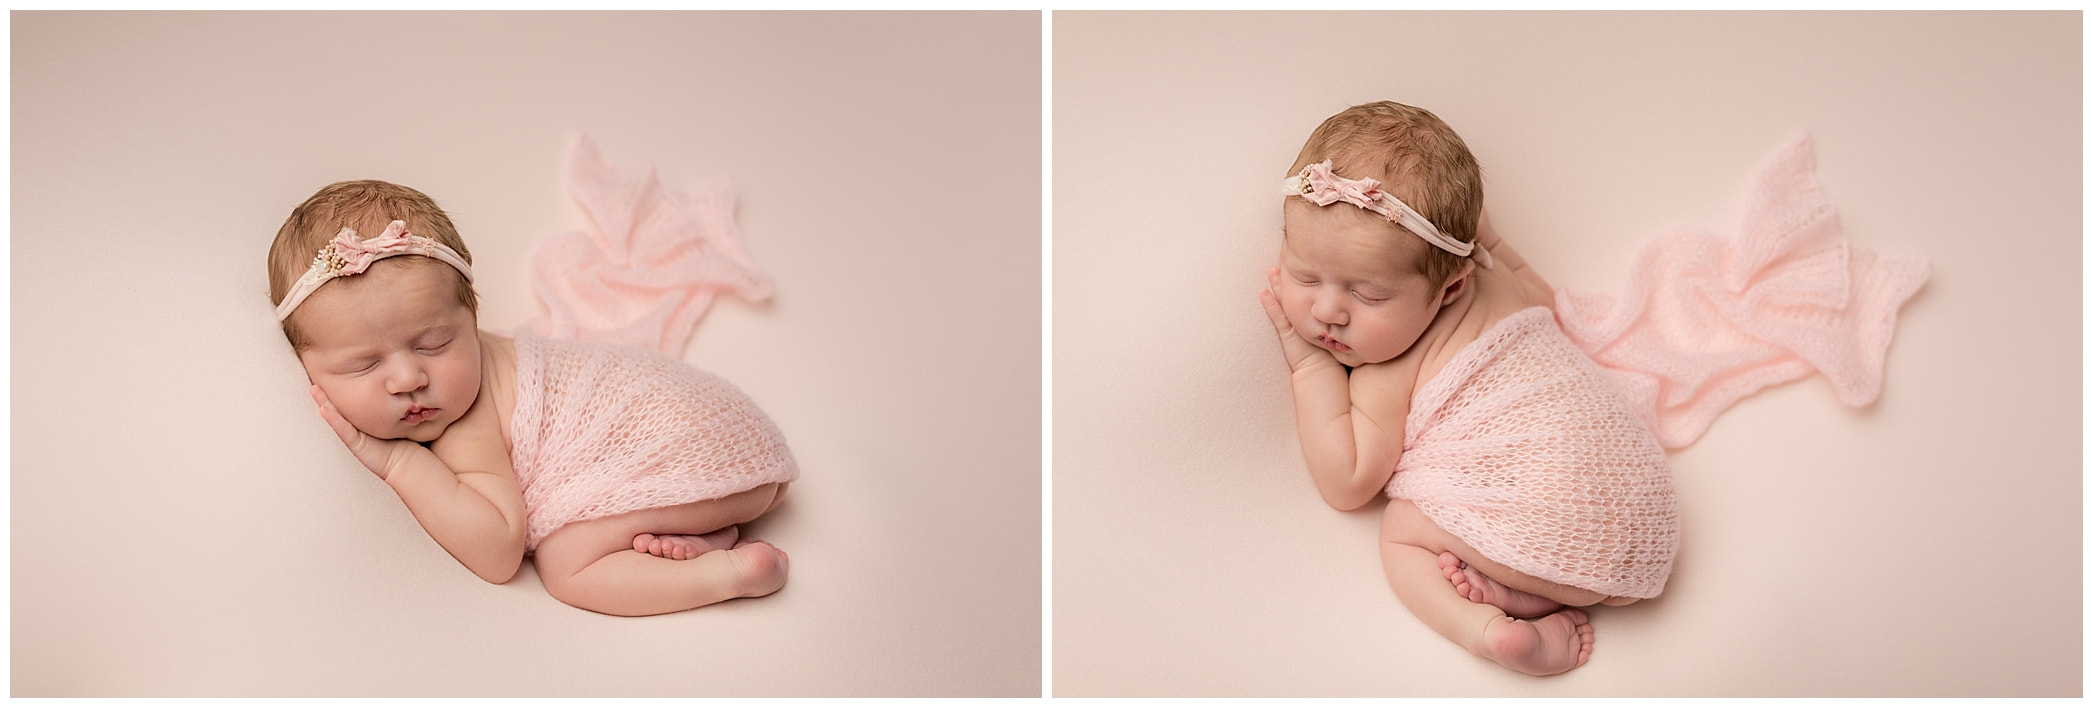 Tushie pose by Lynne Harper baby photographer